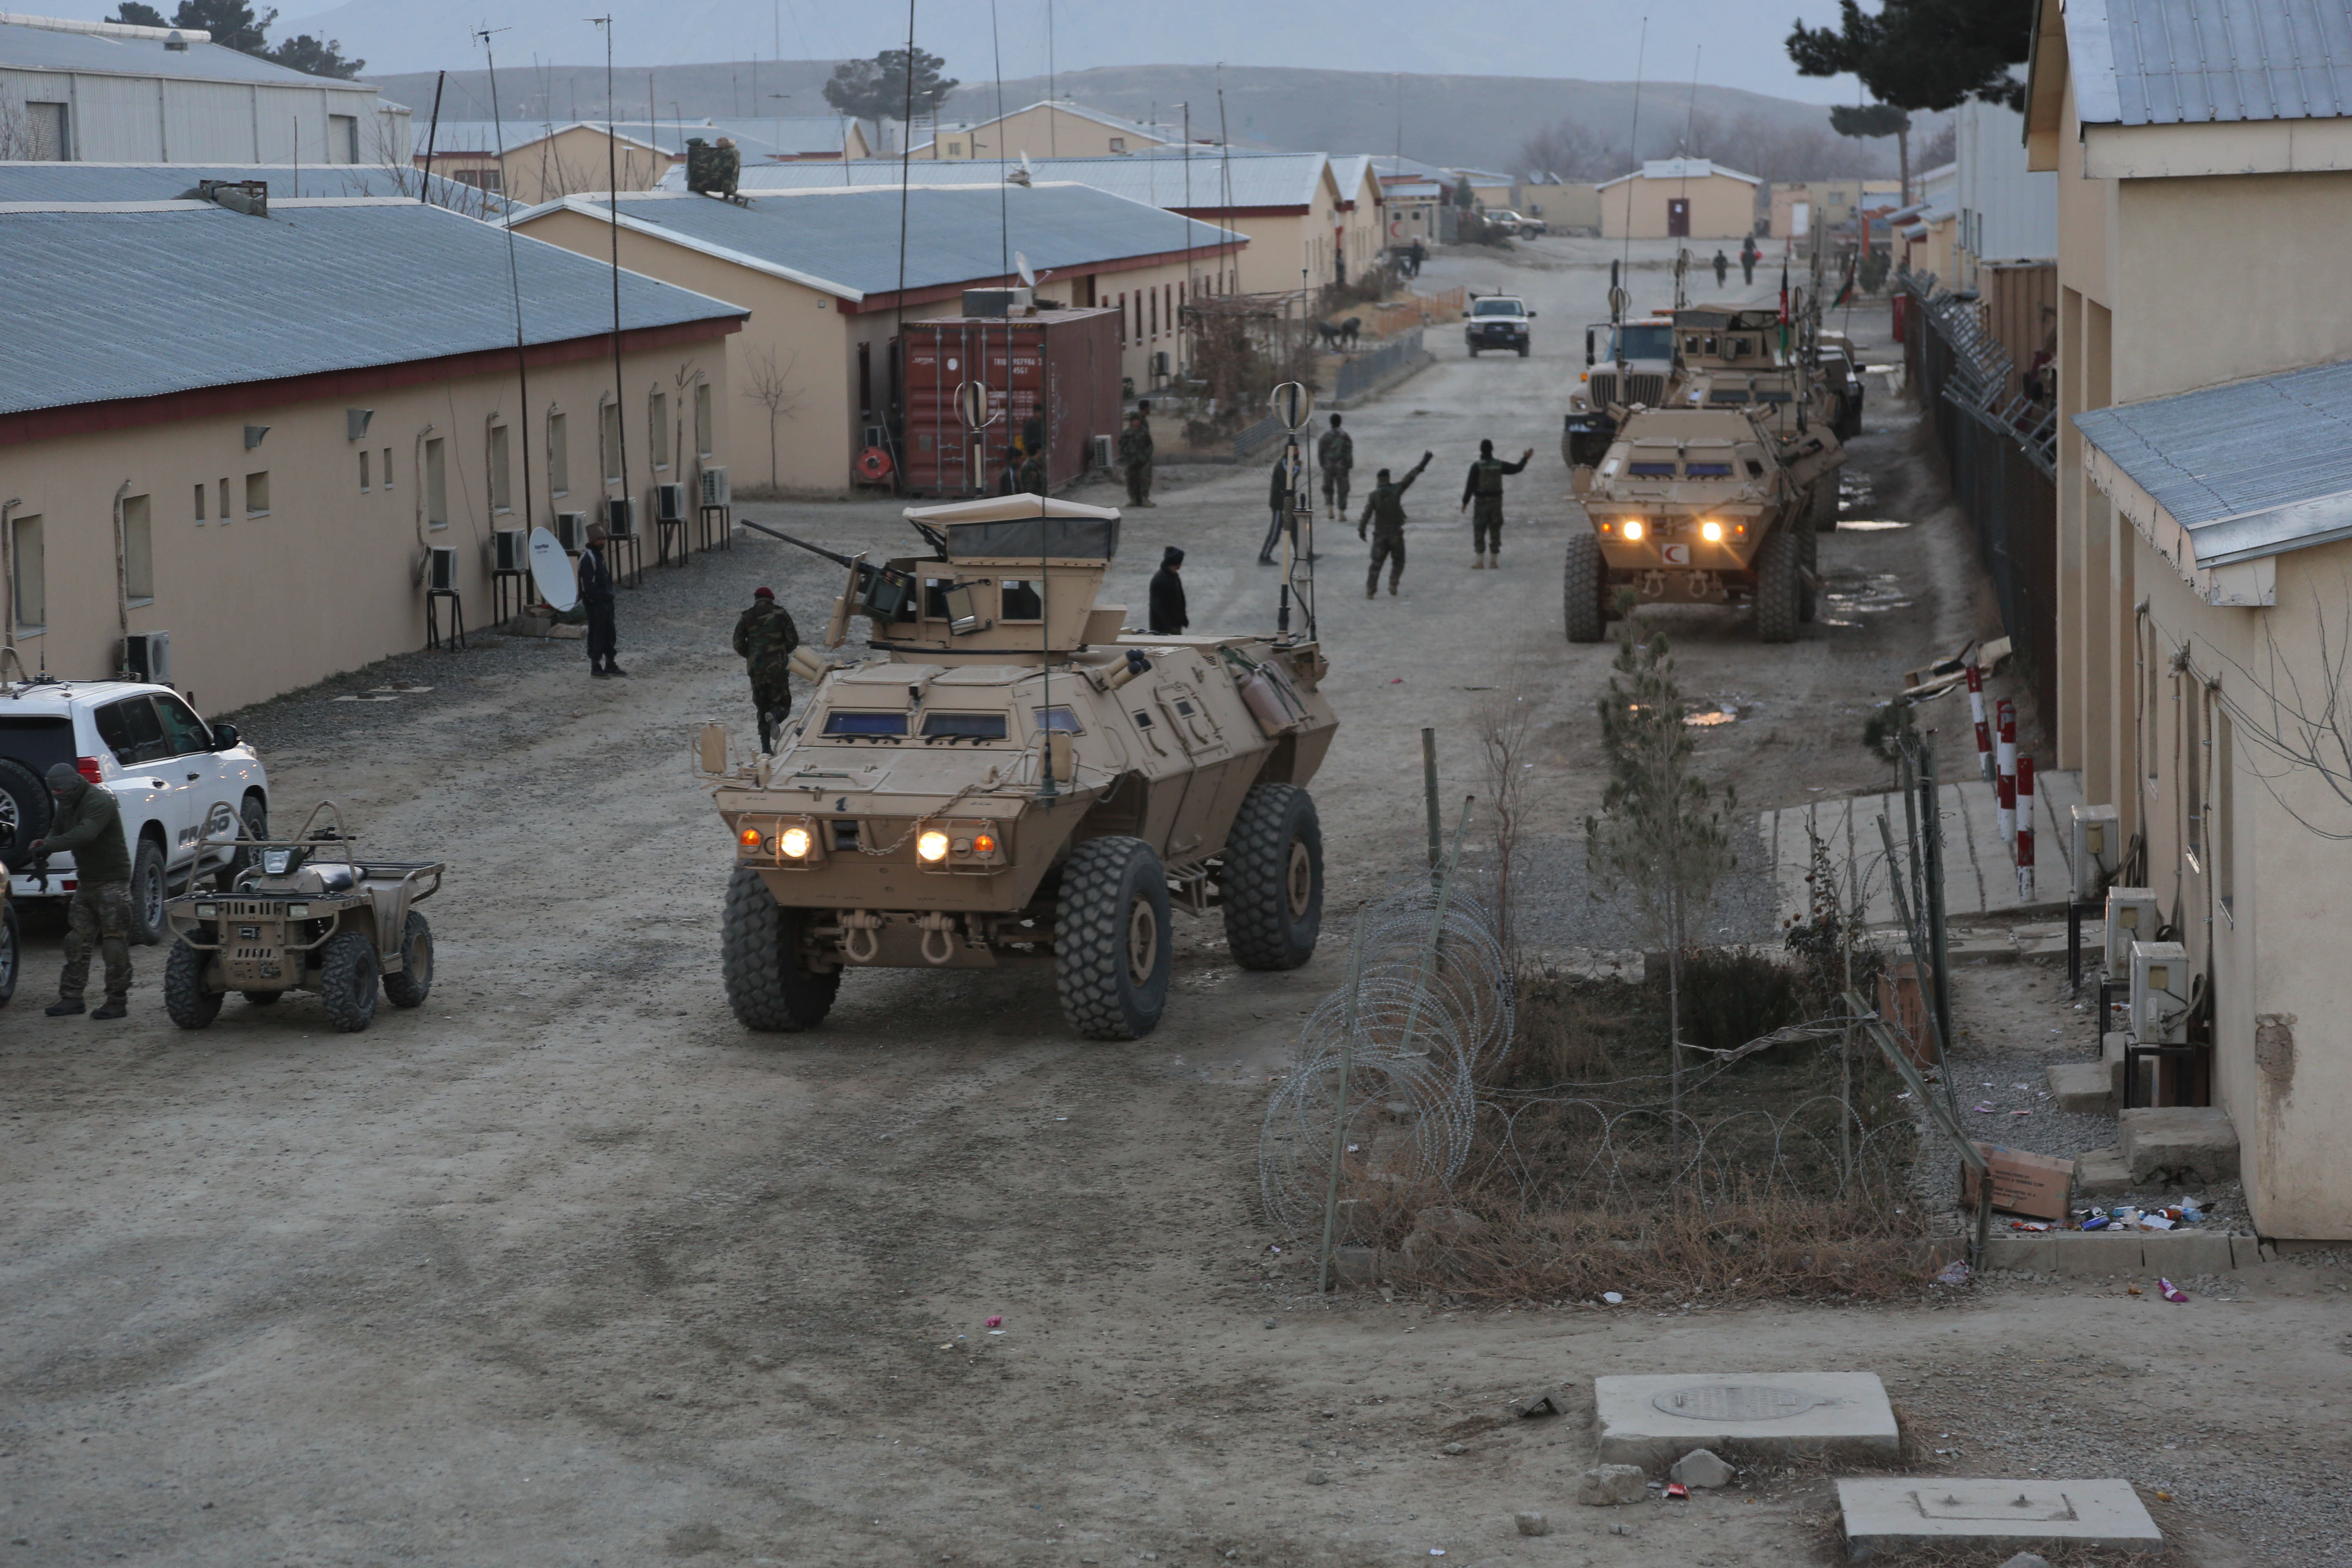 Afghan commandos of 1st Company, 6th Special Operations Kandak conduct movement to their target in Mobile Strike Force Vehicles for an operation in Kabul province, Afghanistan, on Dec. 24, 2013. (Spc. Connor Mendez/U.S. Army)